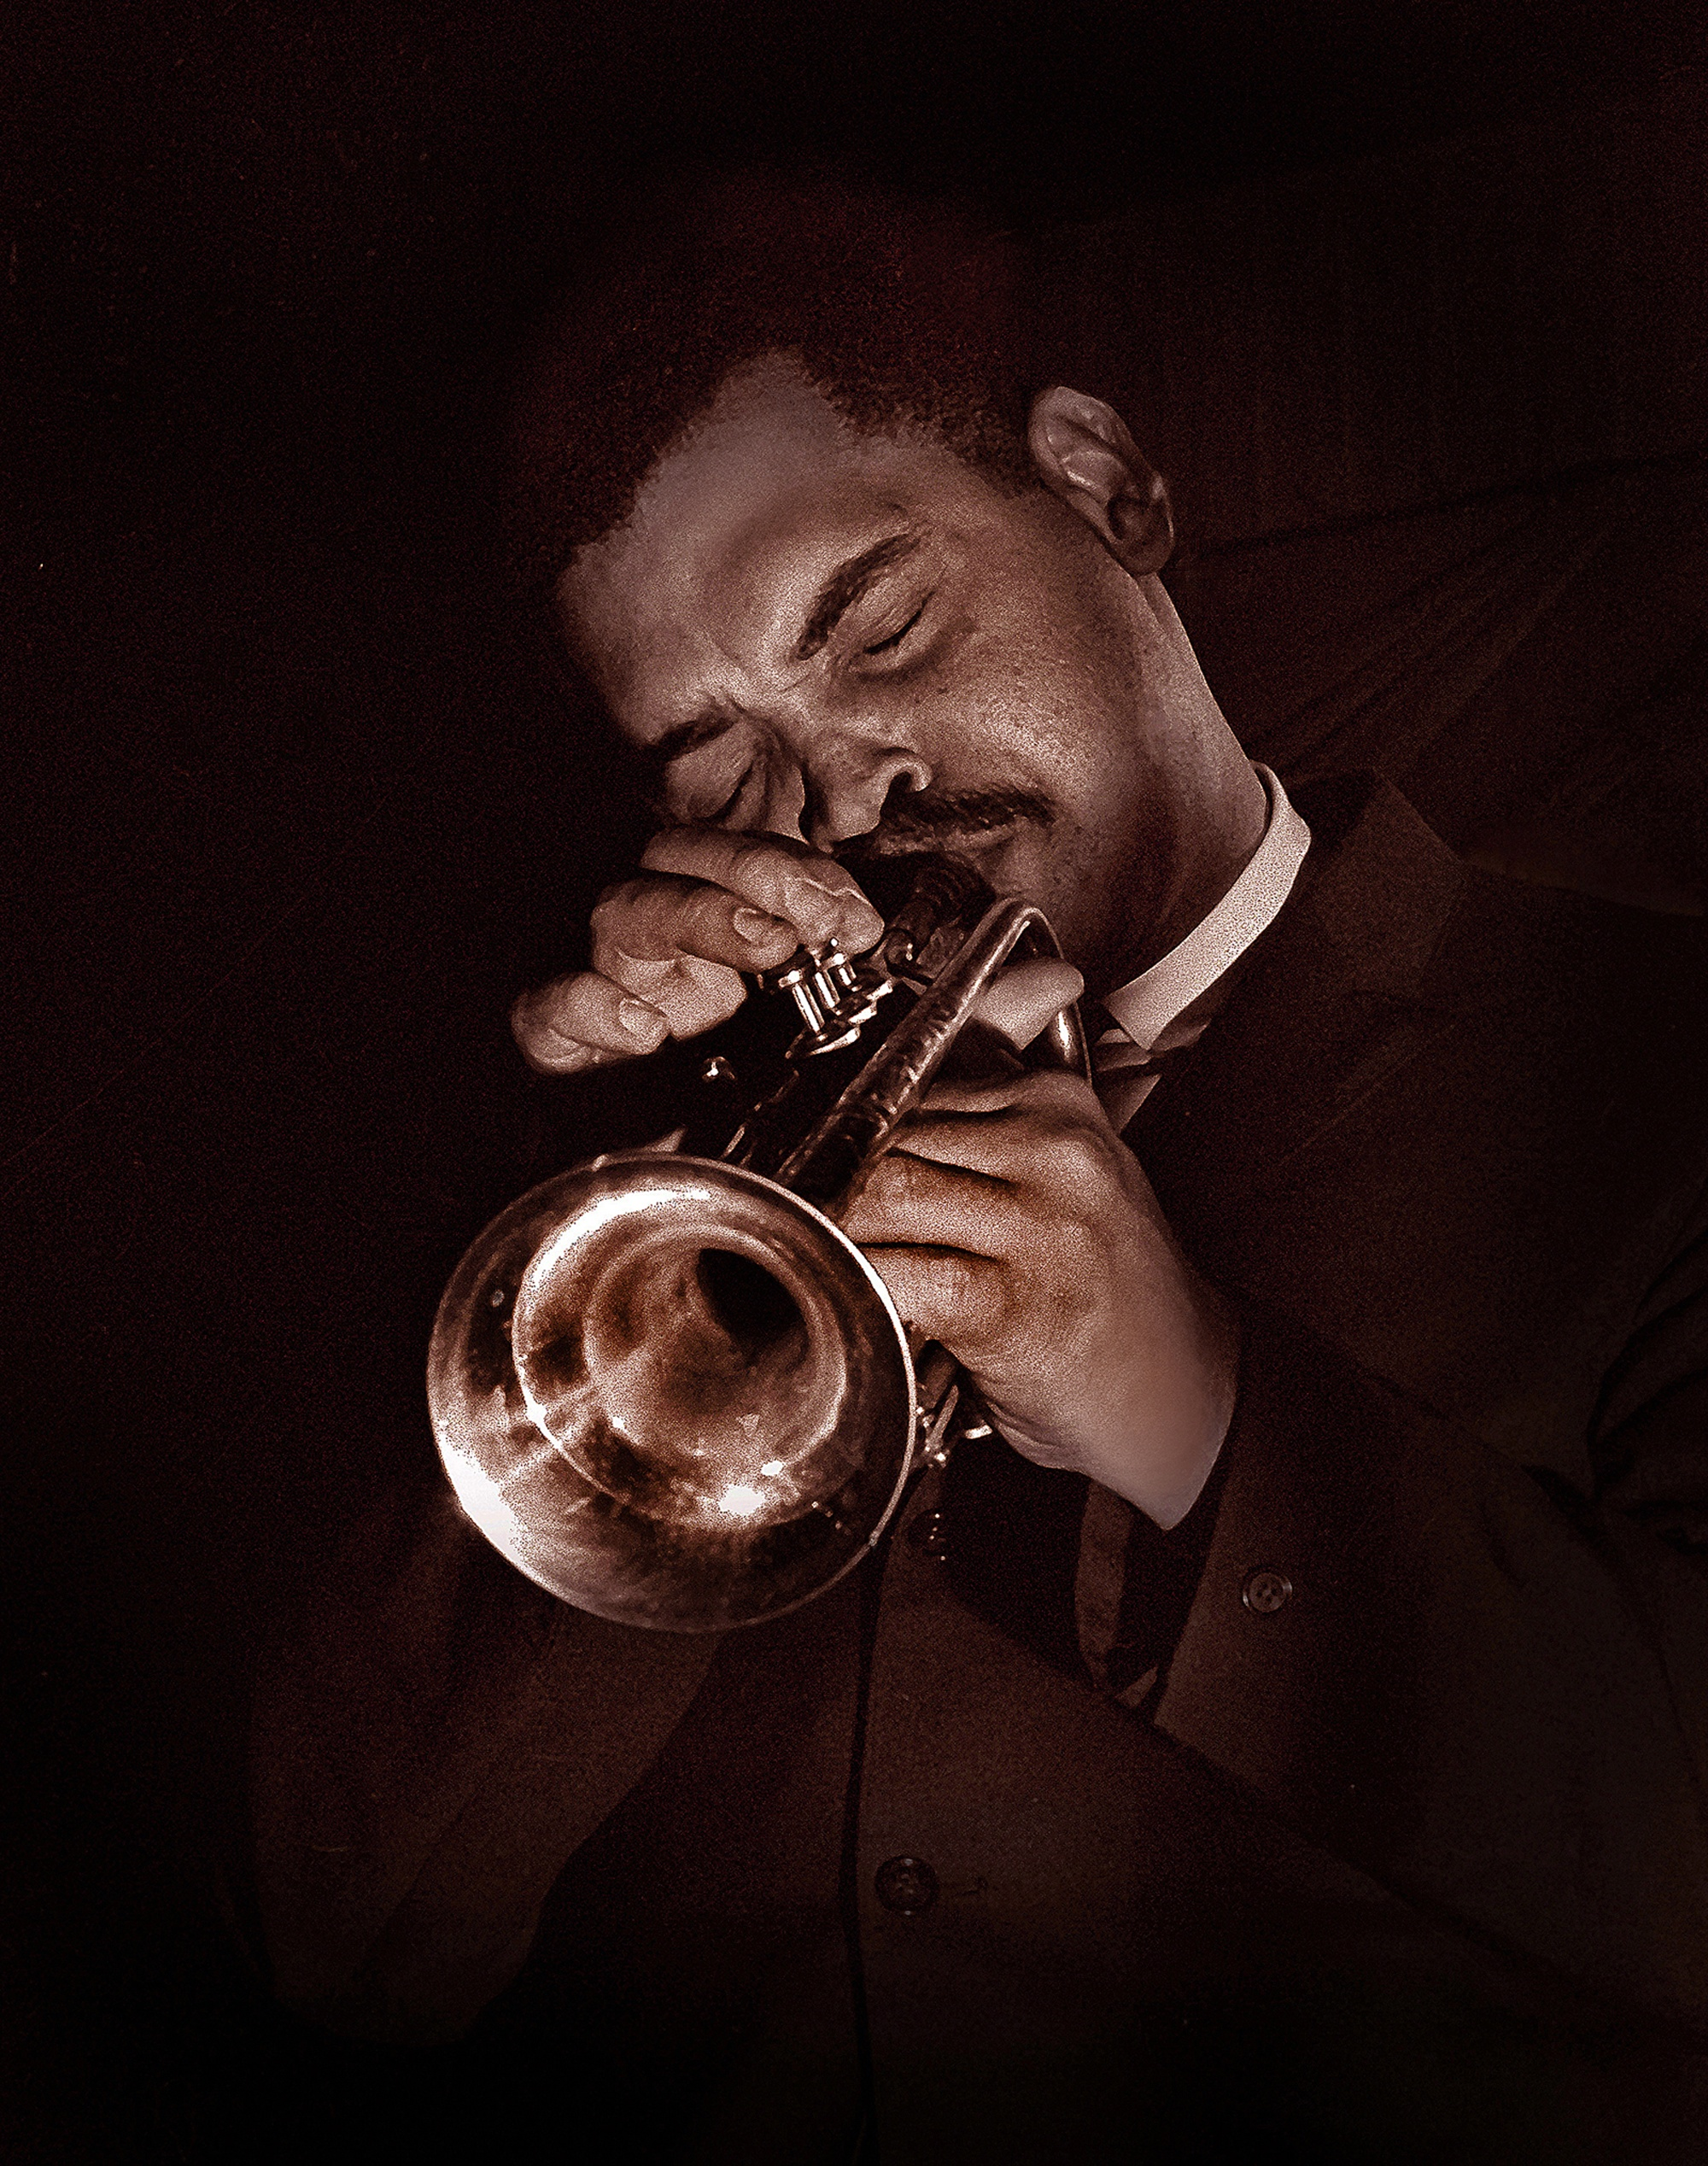 Art farmer at the black hawk jazz club